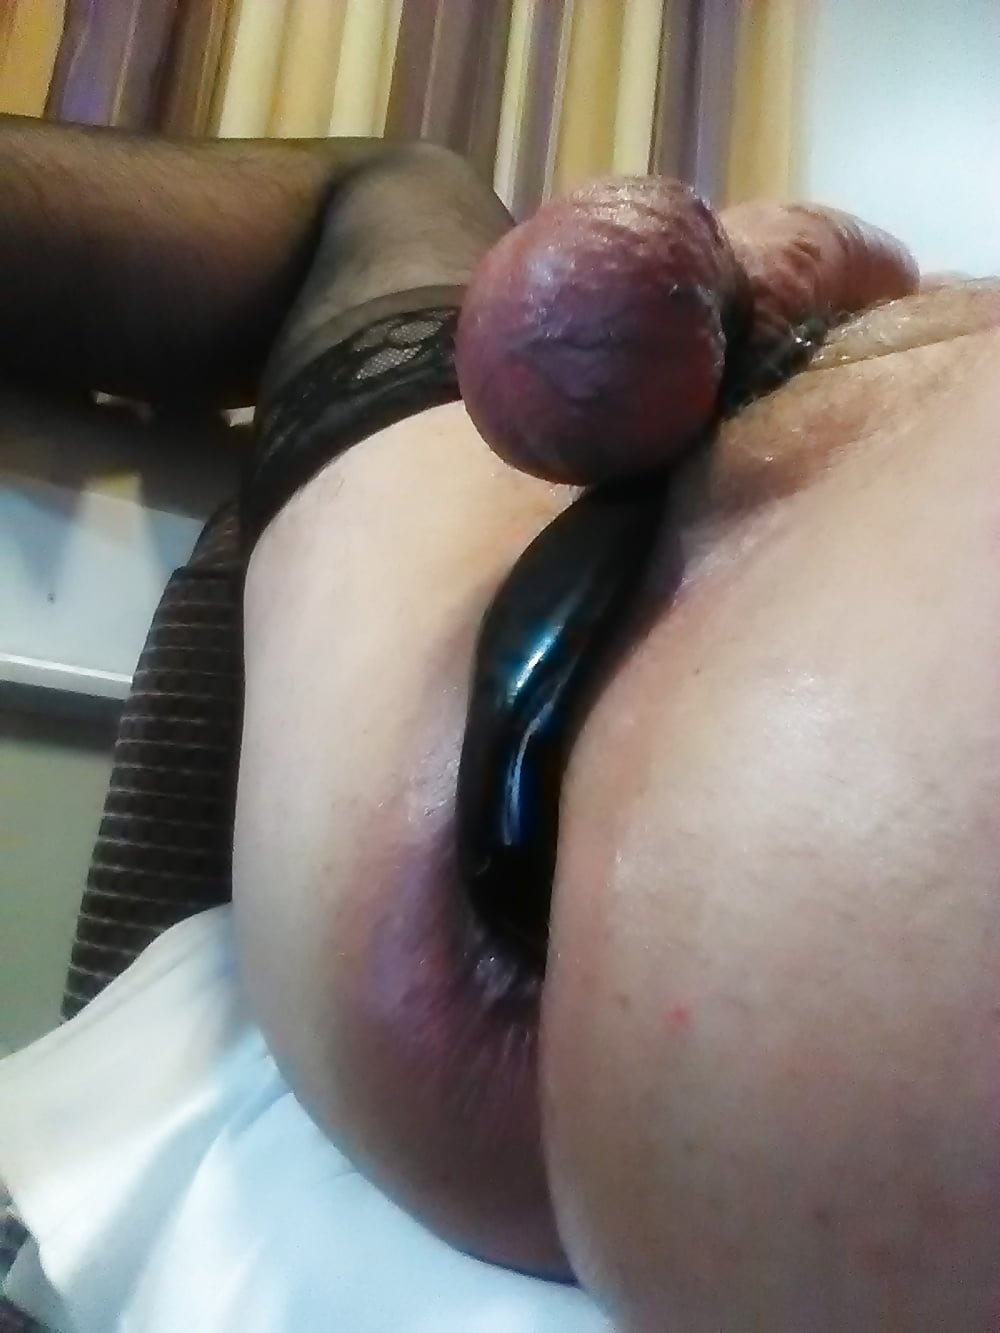 Butt plug with cock ring